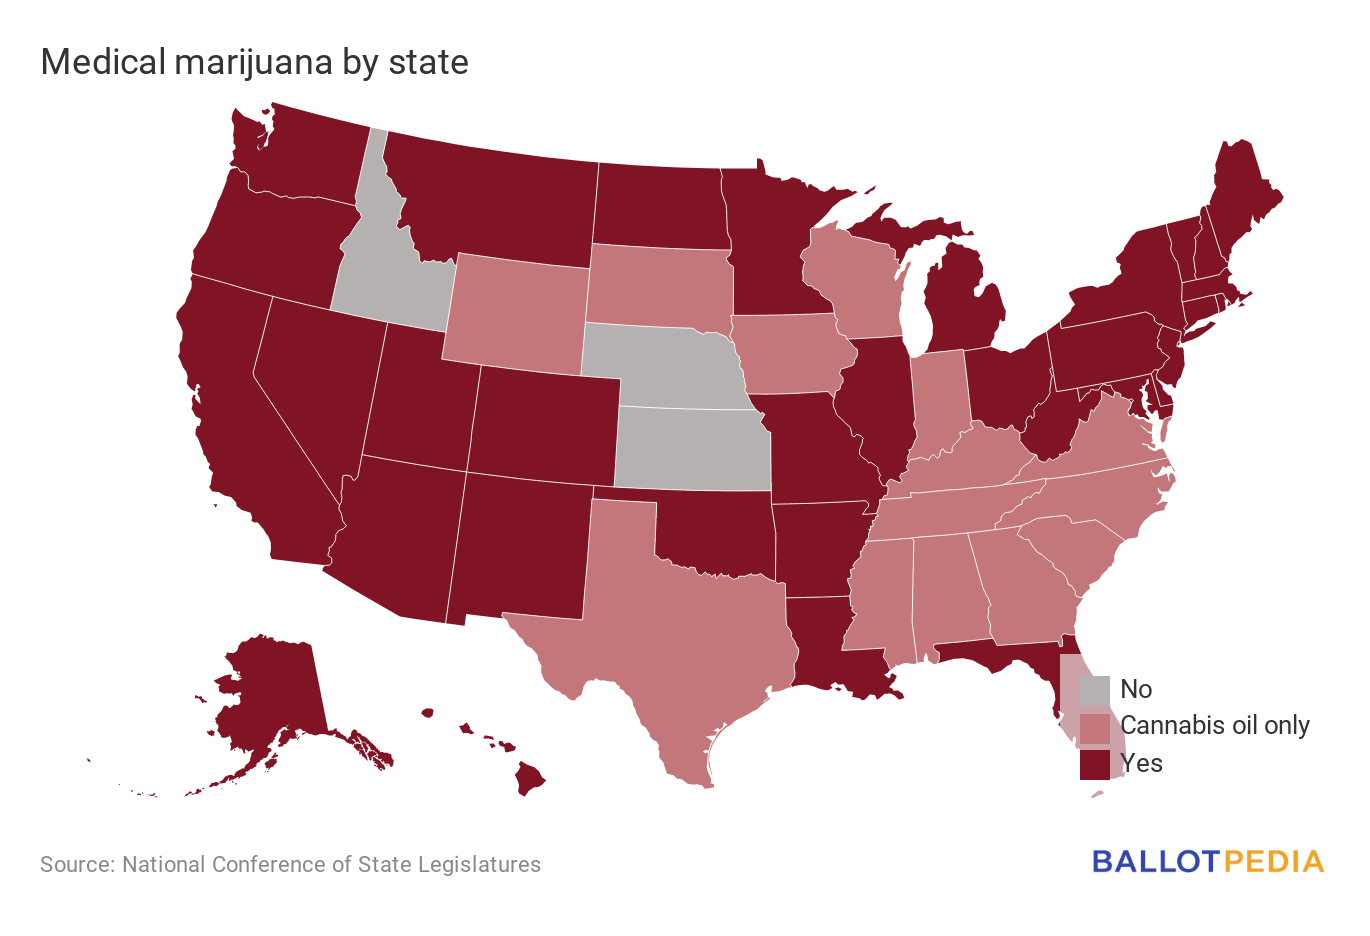 Medical marijuana by state